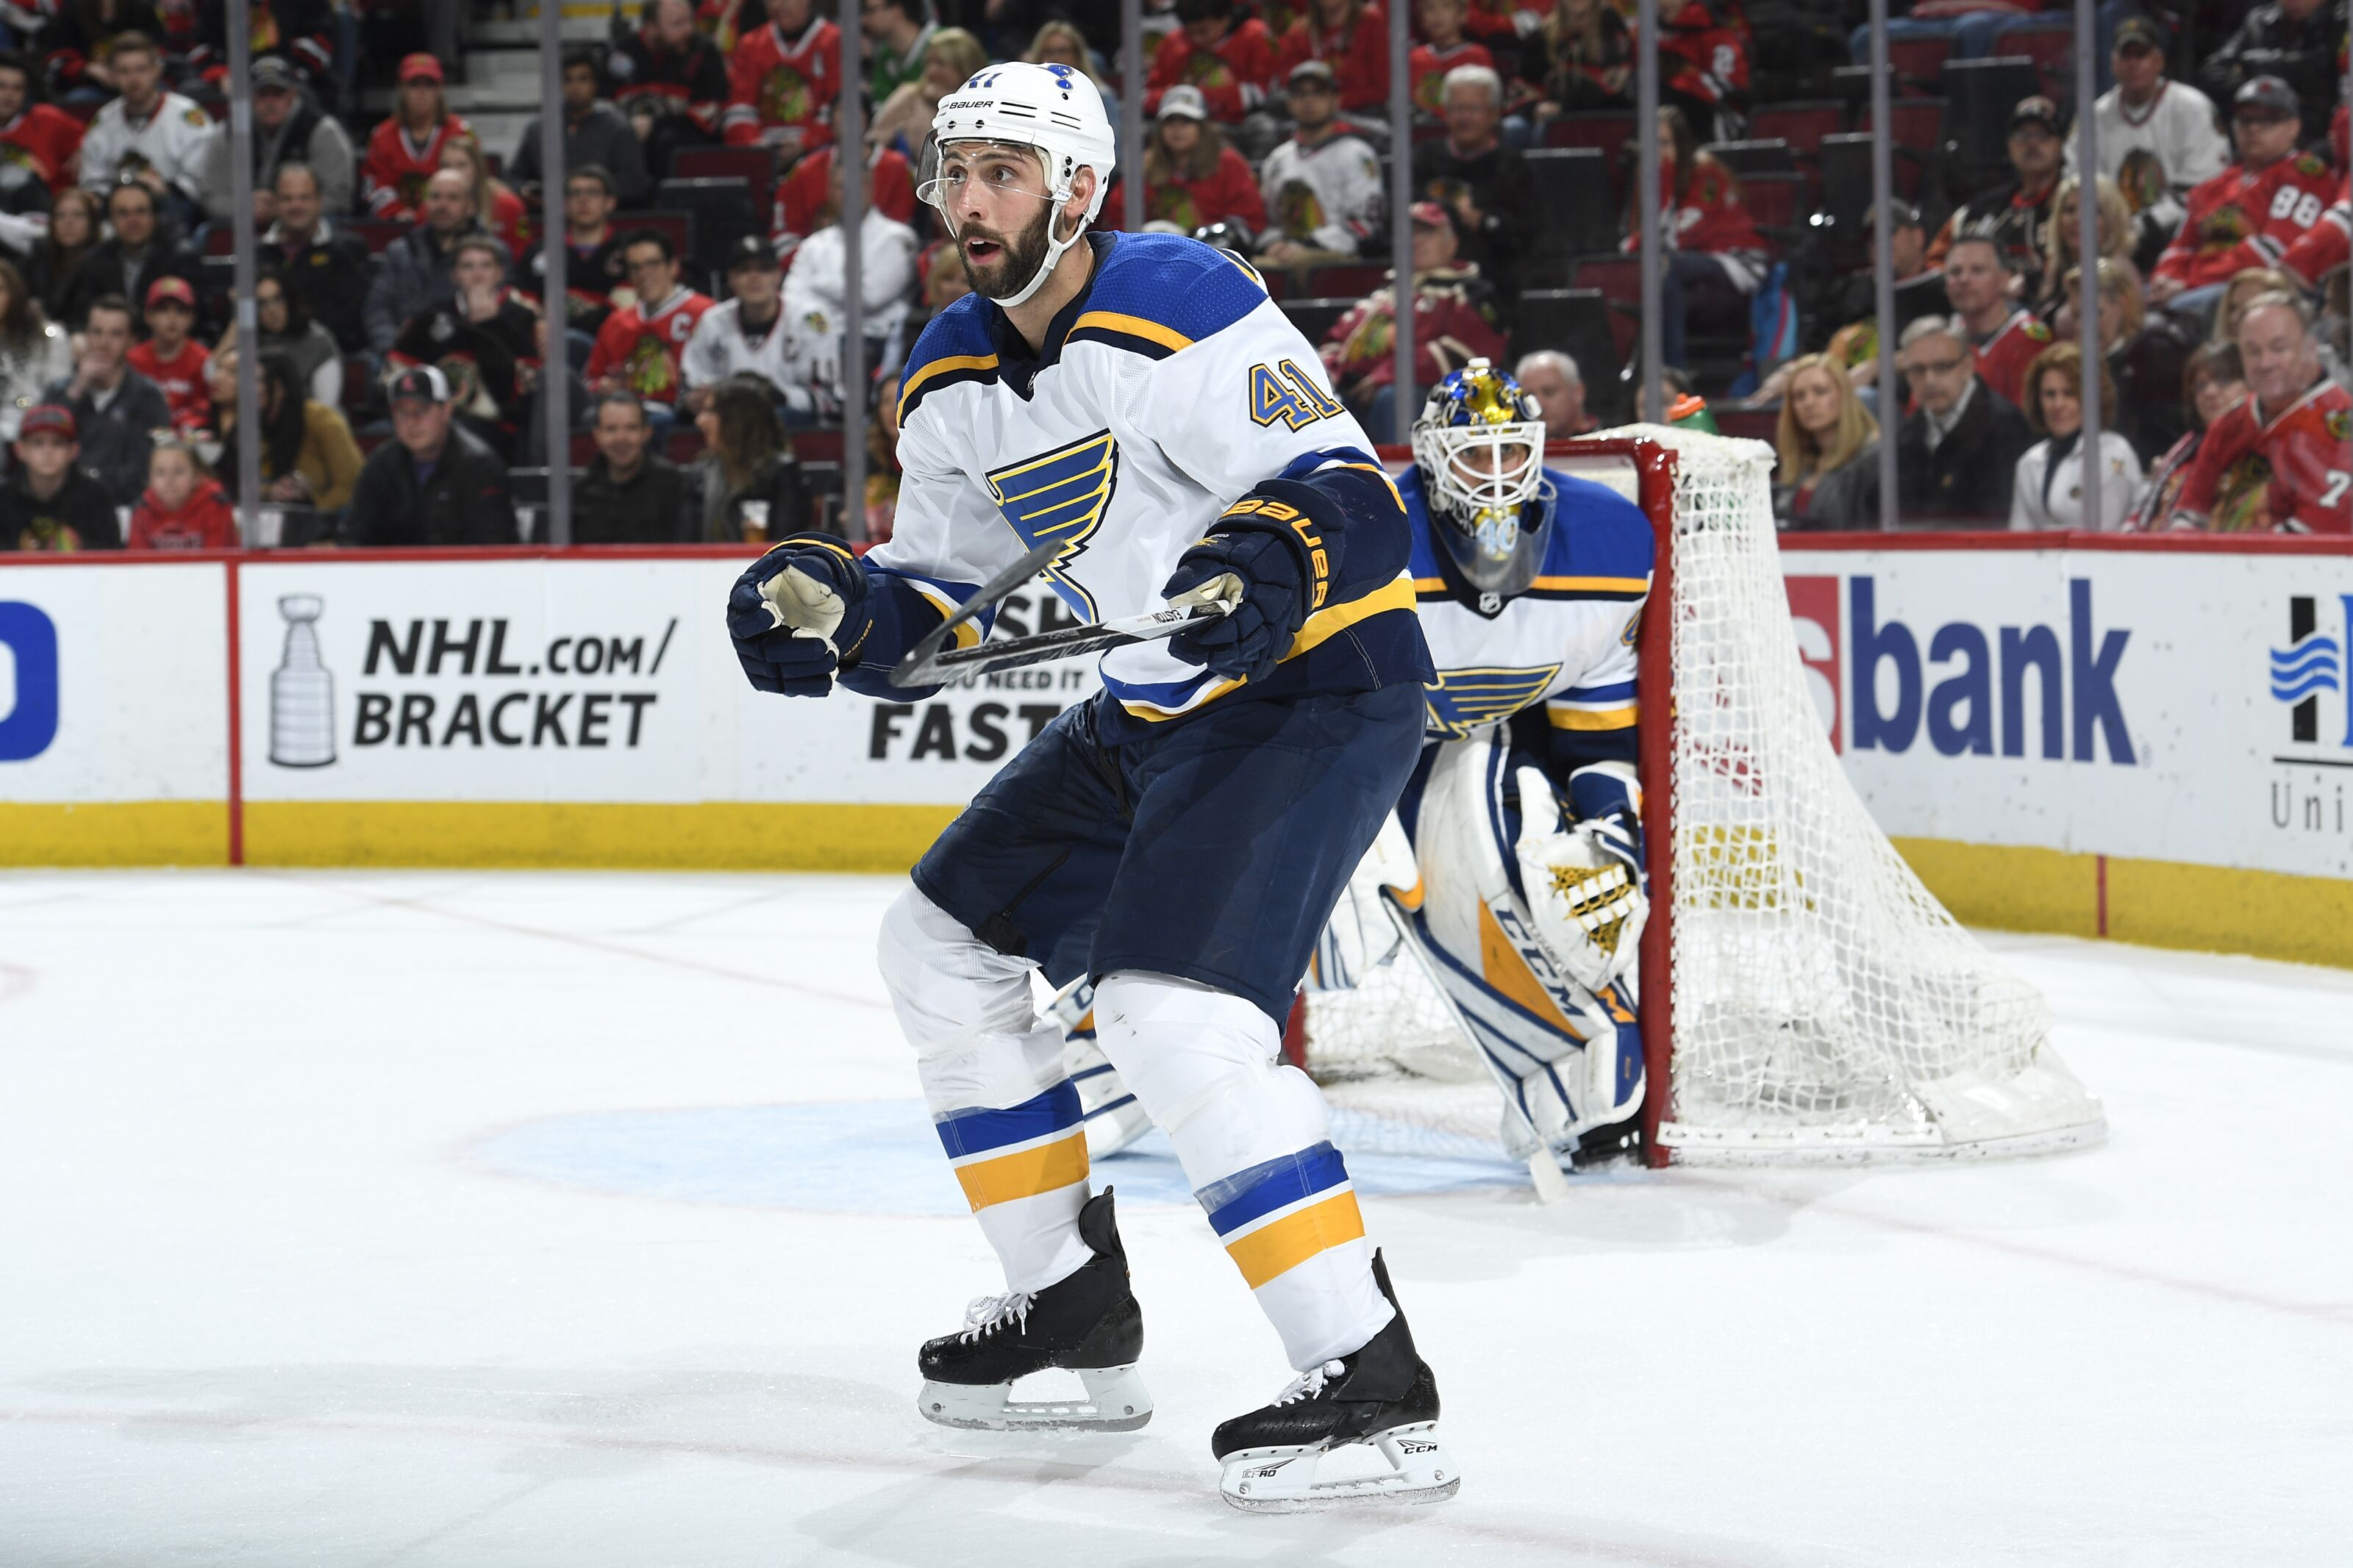 946462330-st-louis-blues-v-chicago-blackhawks.jpg